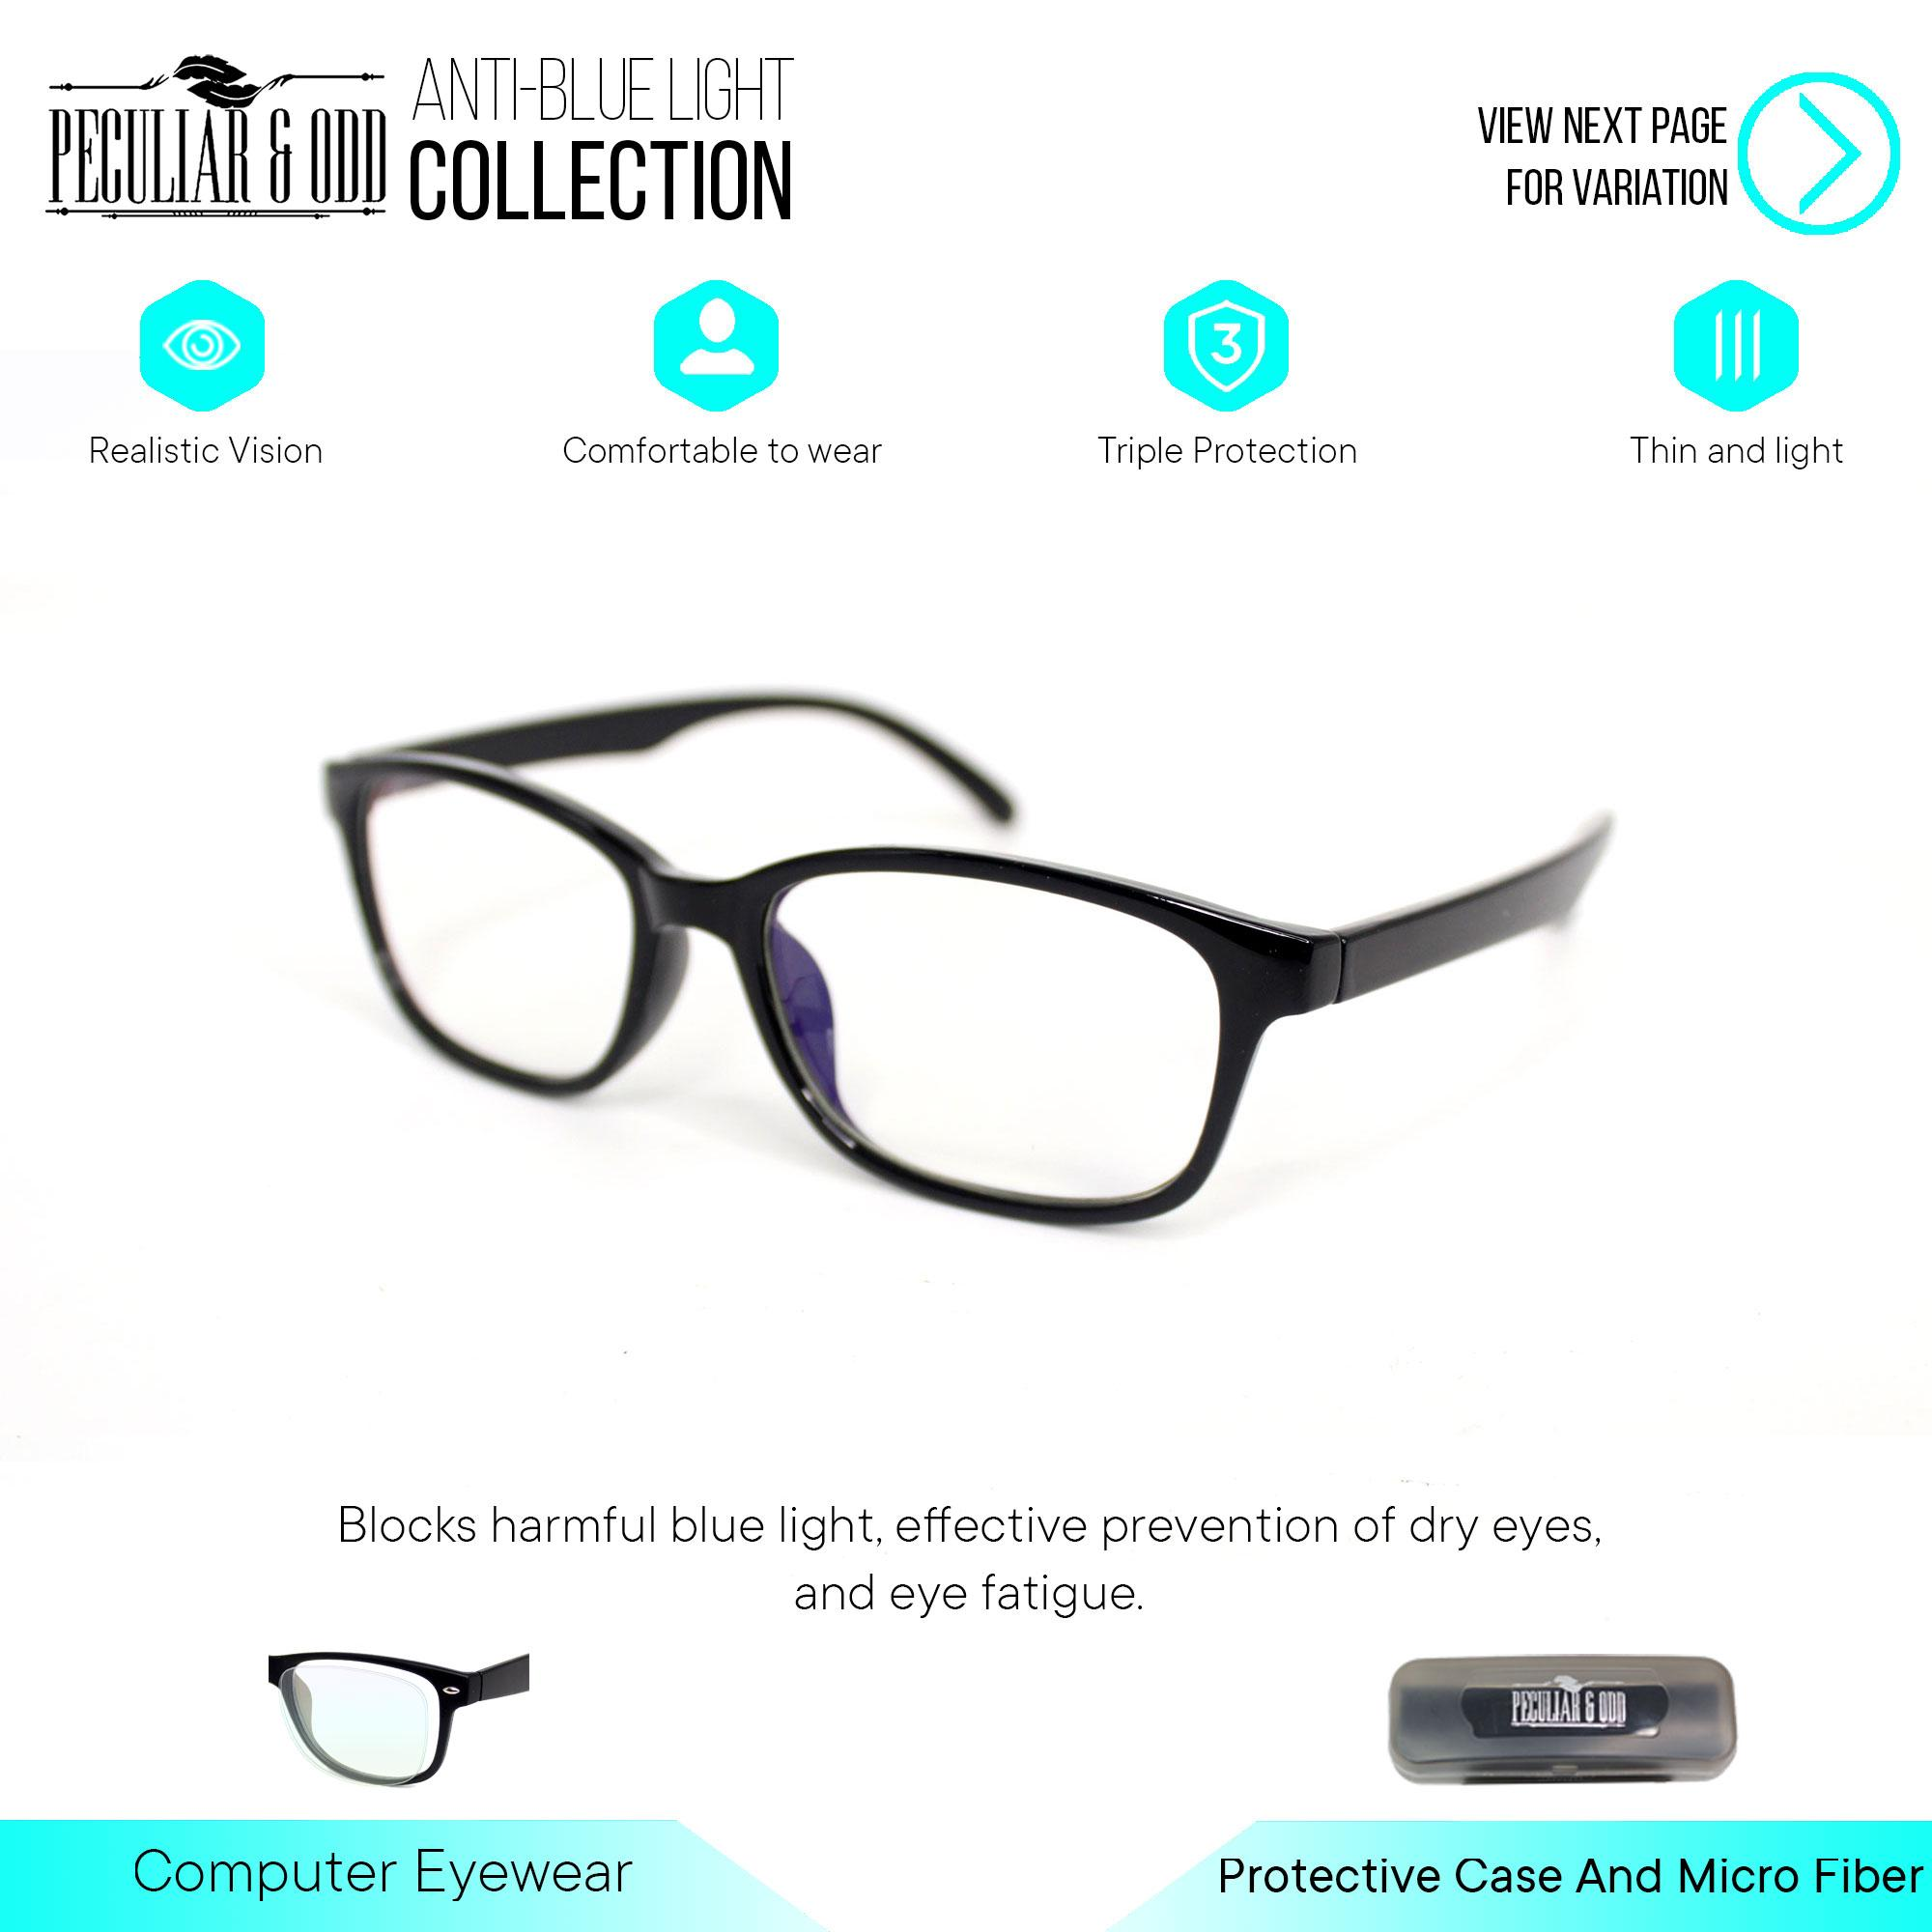 c20a51b0cdf Peculiar Square 3028 CoalBlackClear Anti Radiation Computer Eyeglass  Optical Replaceable Eyewear Unisex new